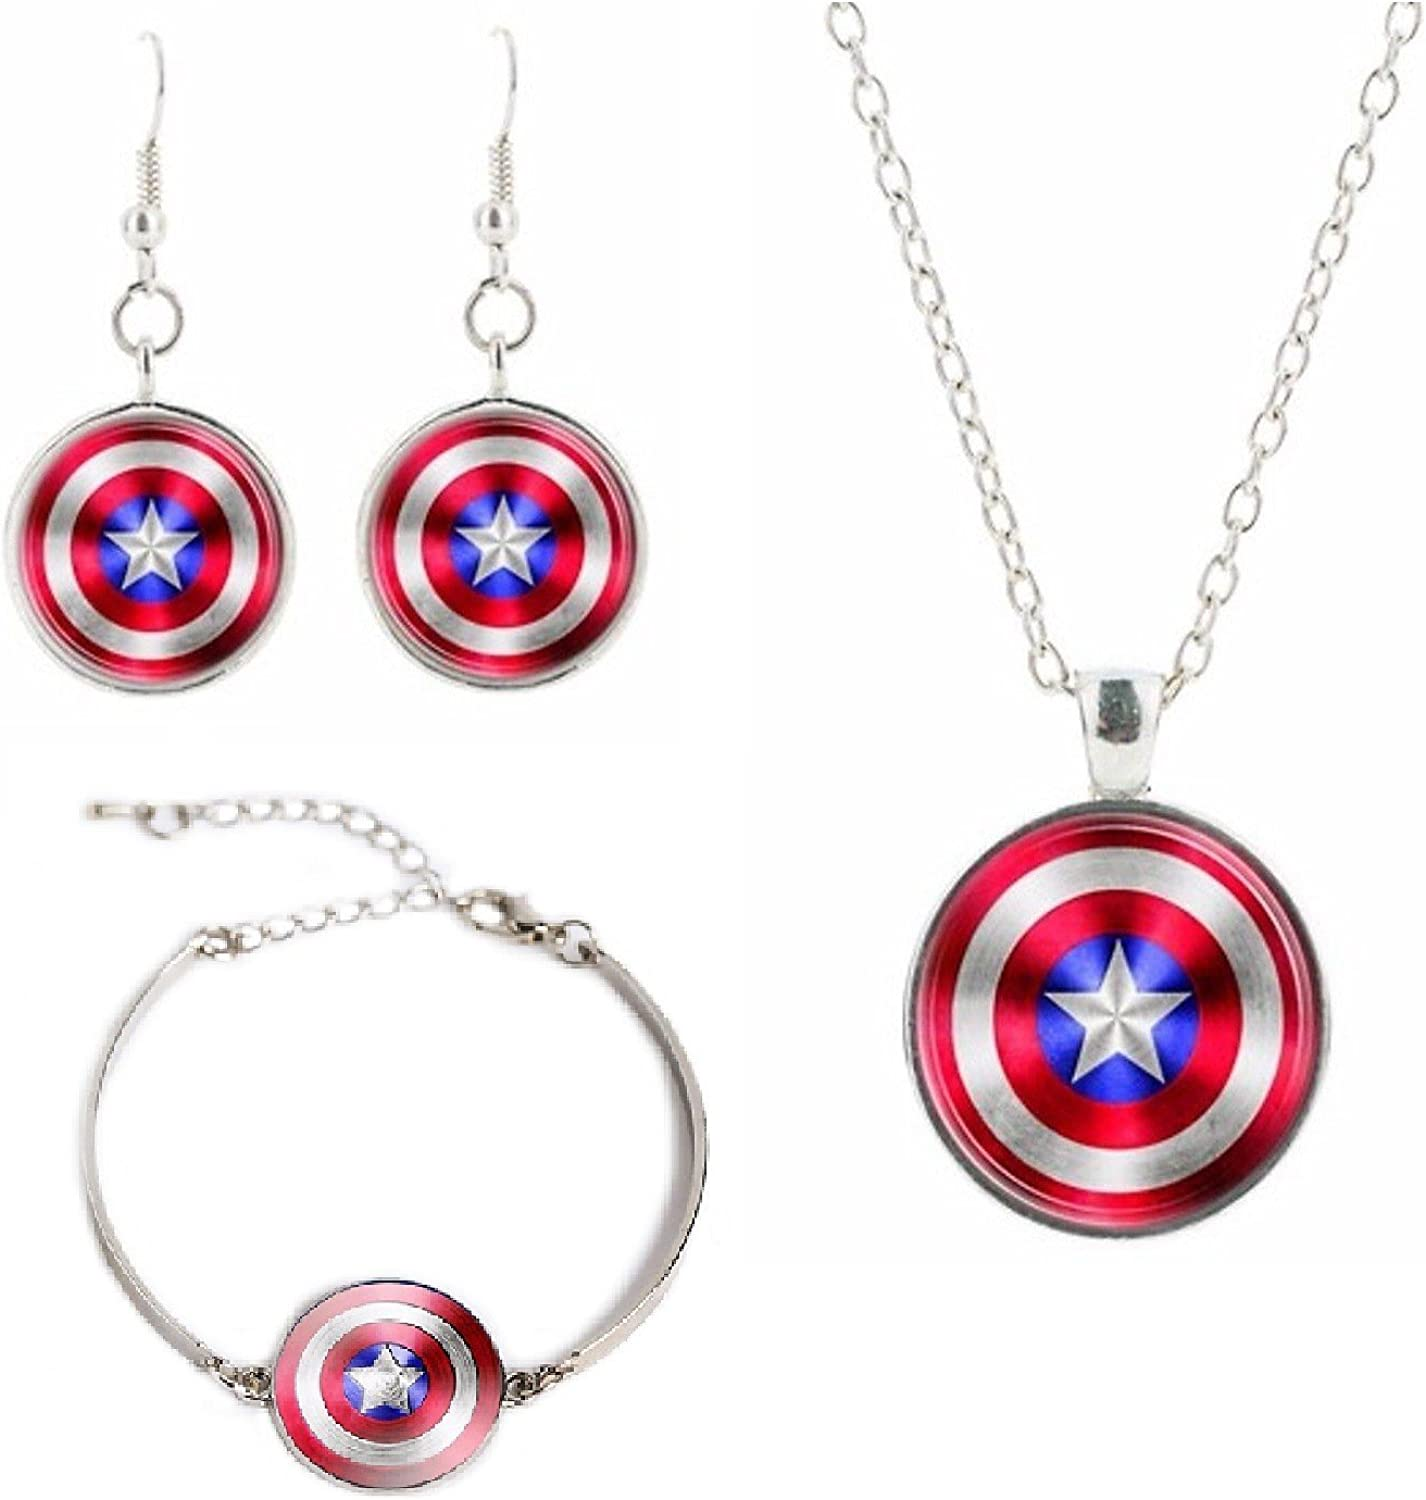 New Horizons Production Captain America Logo Glass Domed Pendant Necklace, Earring, Braclet Jewelry Set